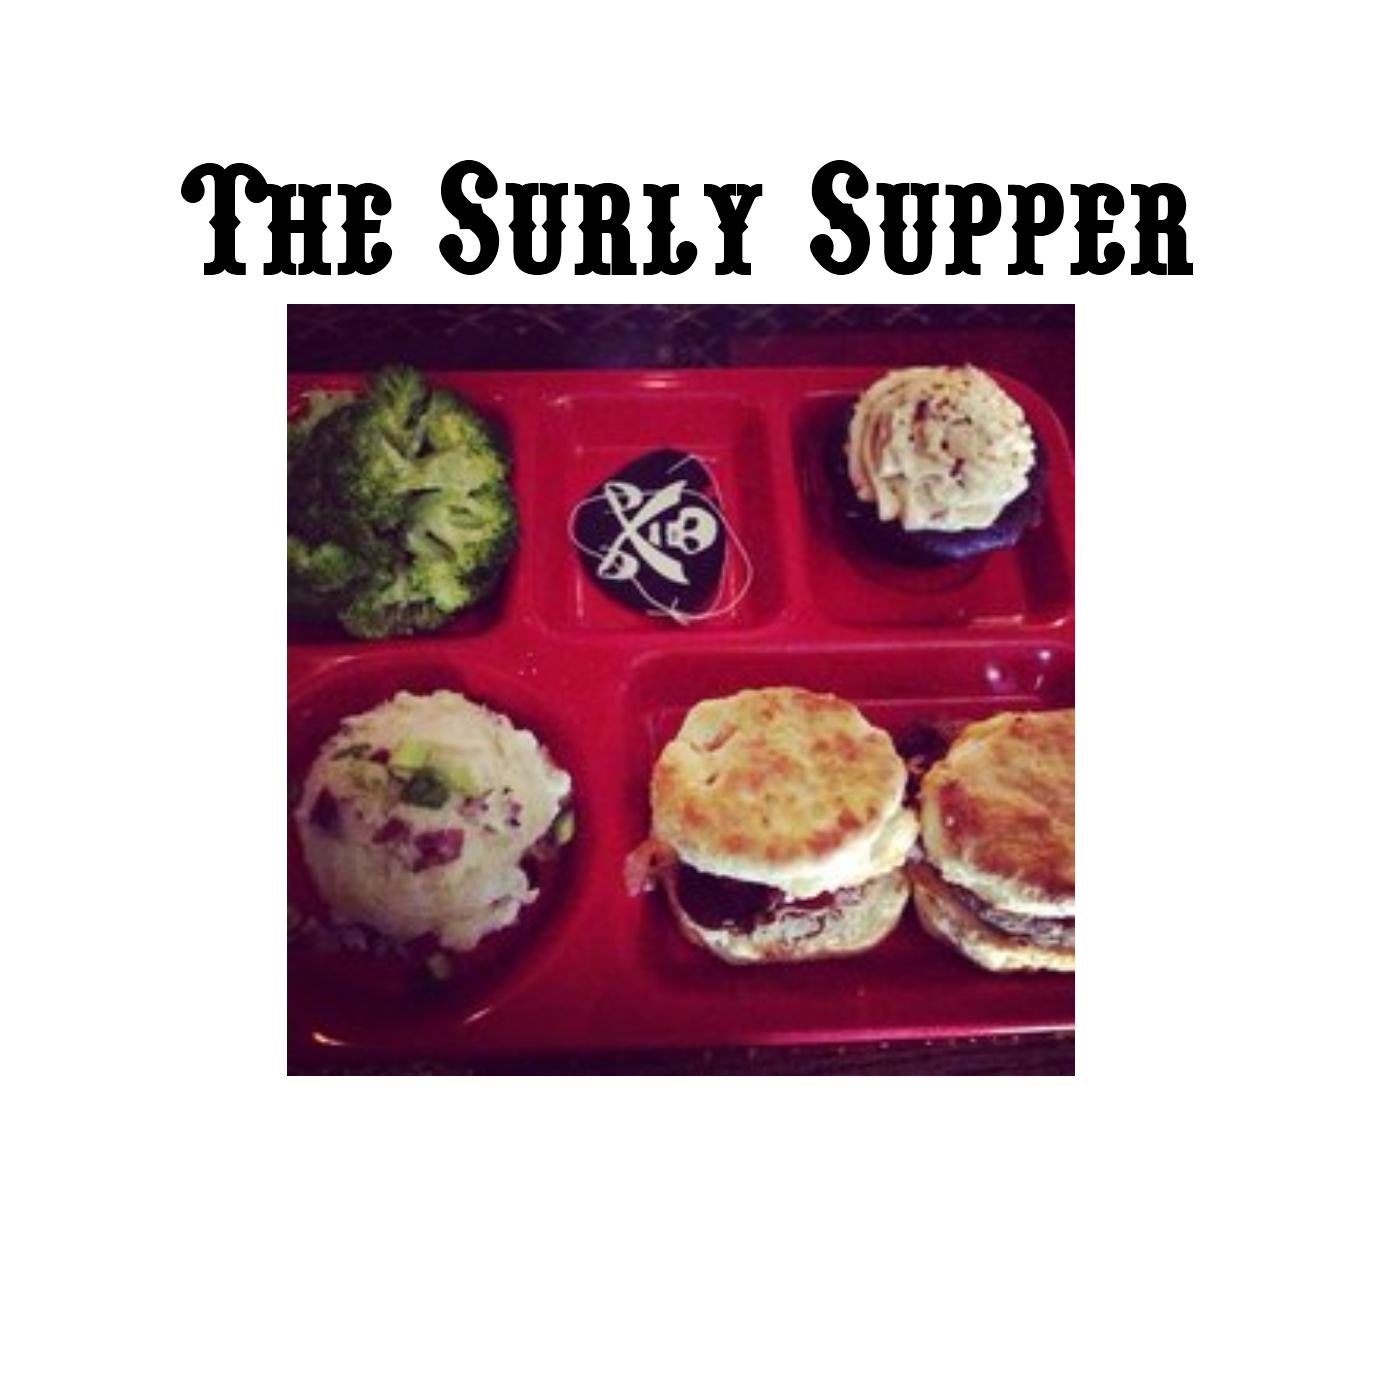 Surly Supper